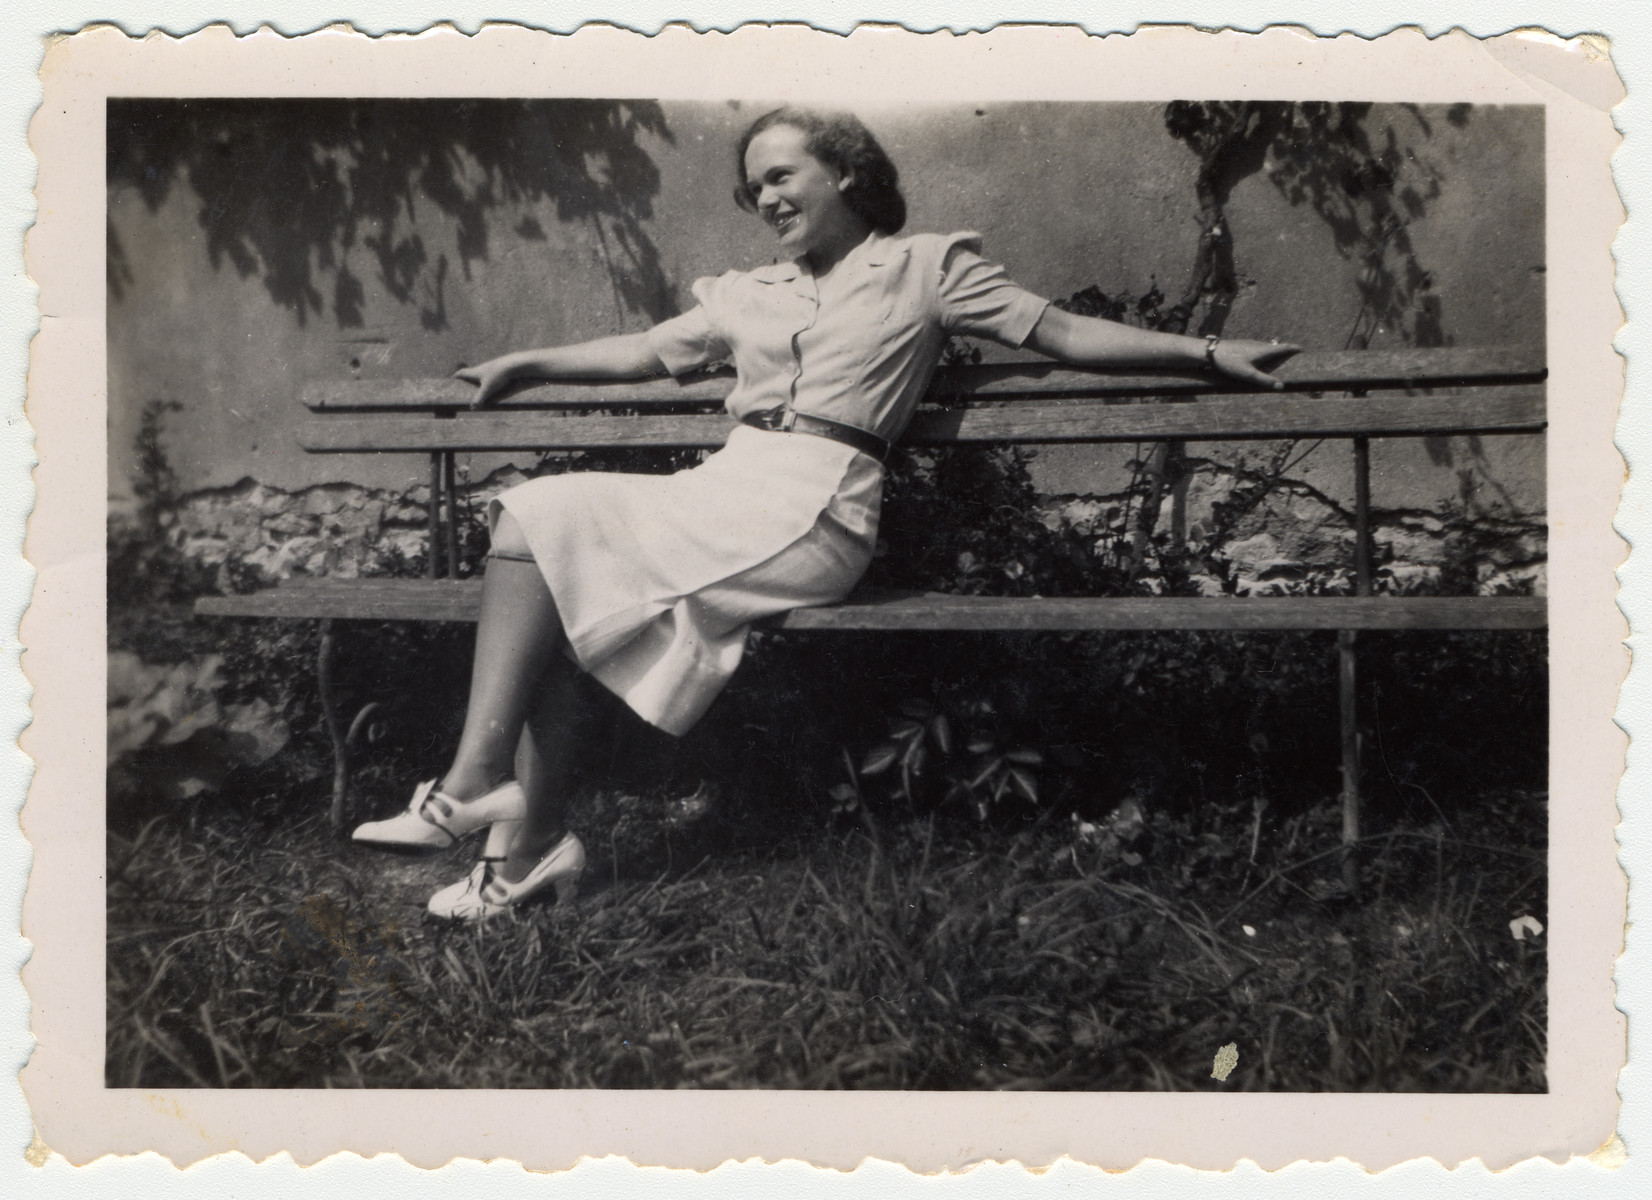 A young Jewish woman relaxes on an outdoor bench in Mirabeau, France.  Pictured is Ilse Karliner.  A few months later she was sent to Drancy and from there to Auschwitz where she perished.